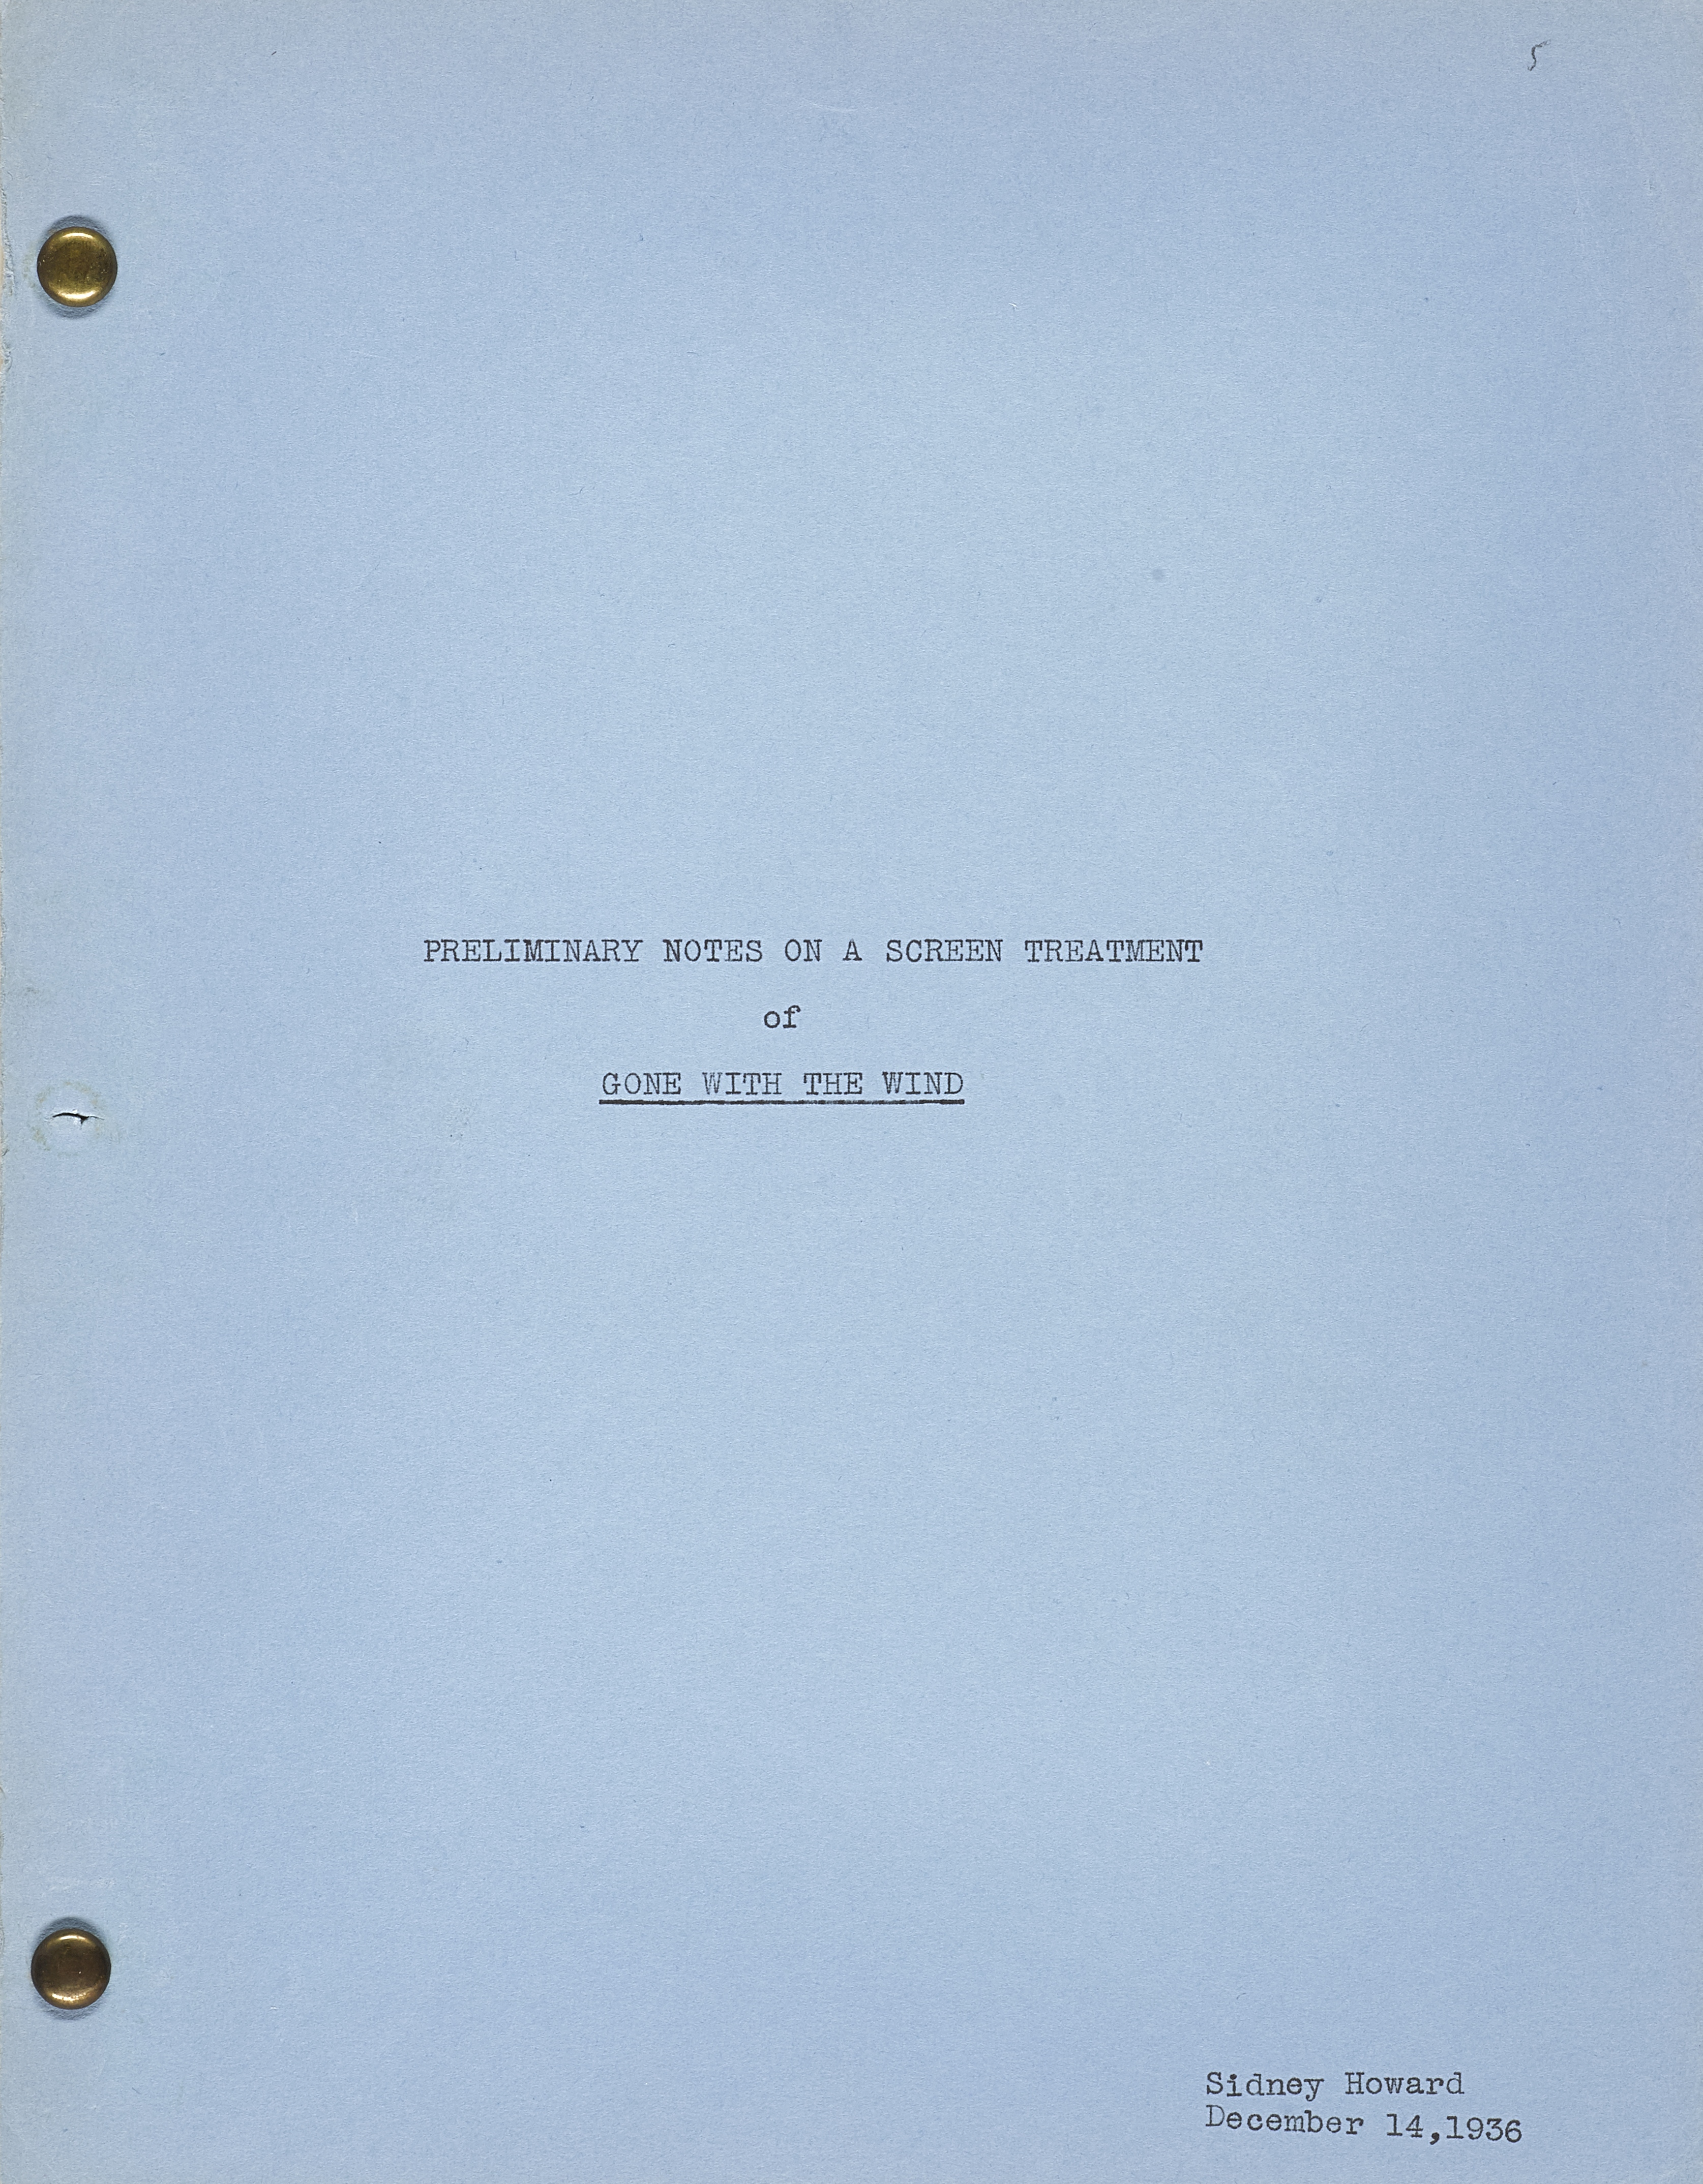 A Gone With the Wind preliminary story treatment by Sidney Howard - Image 2 of 2